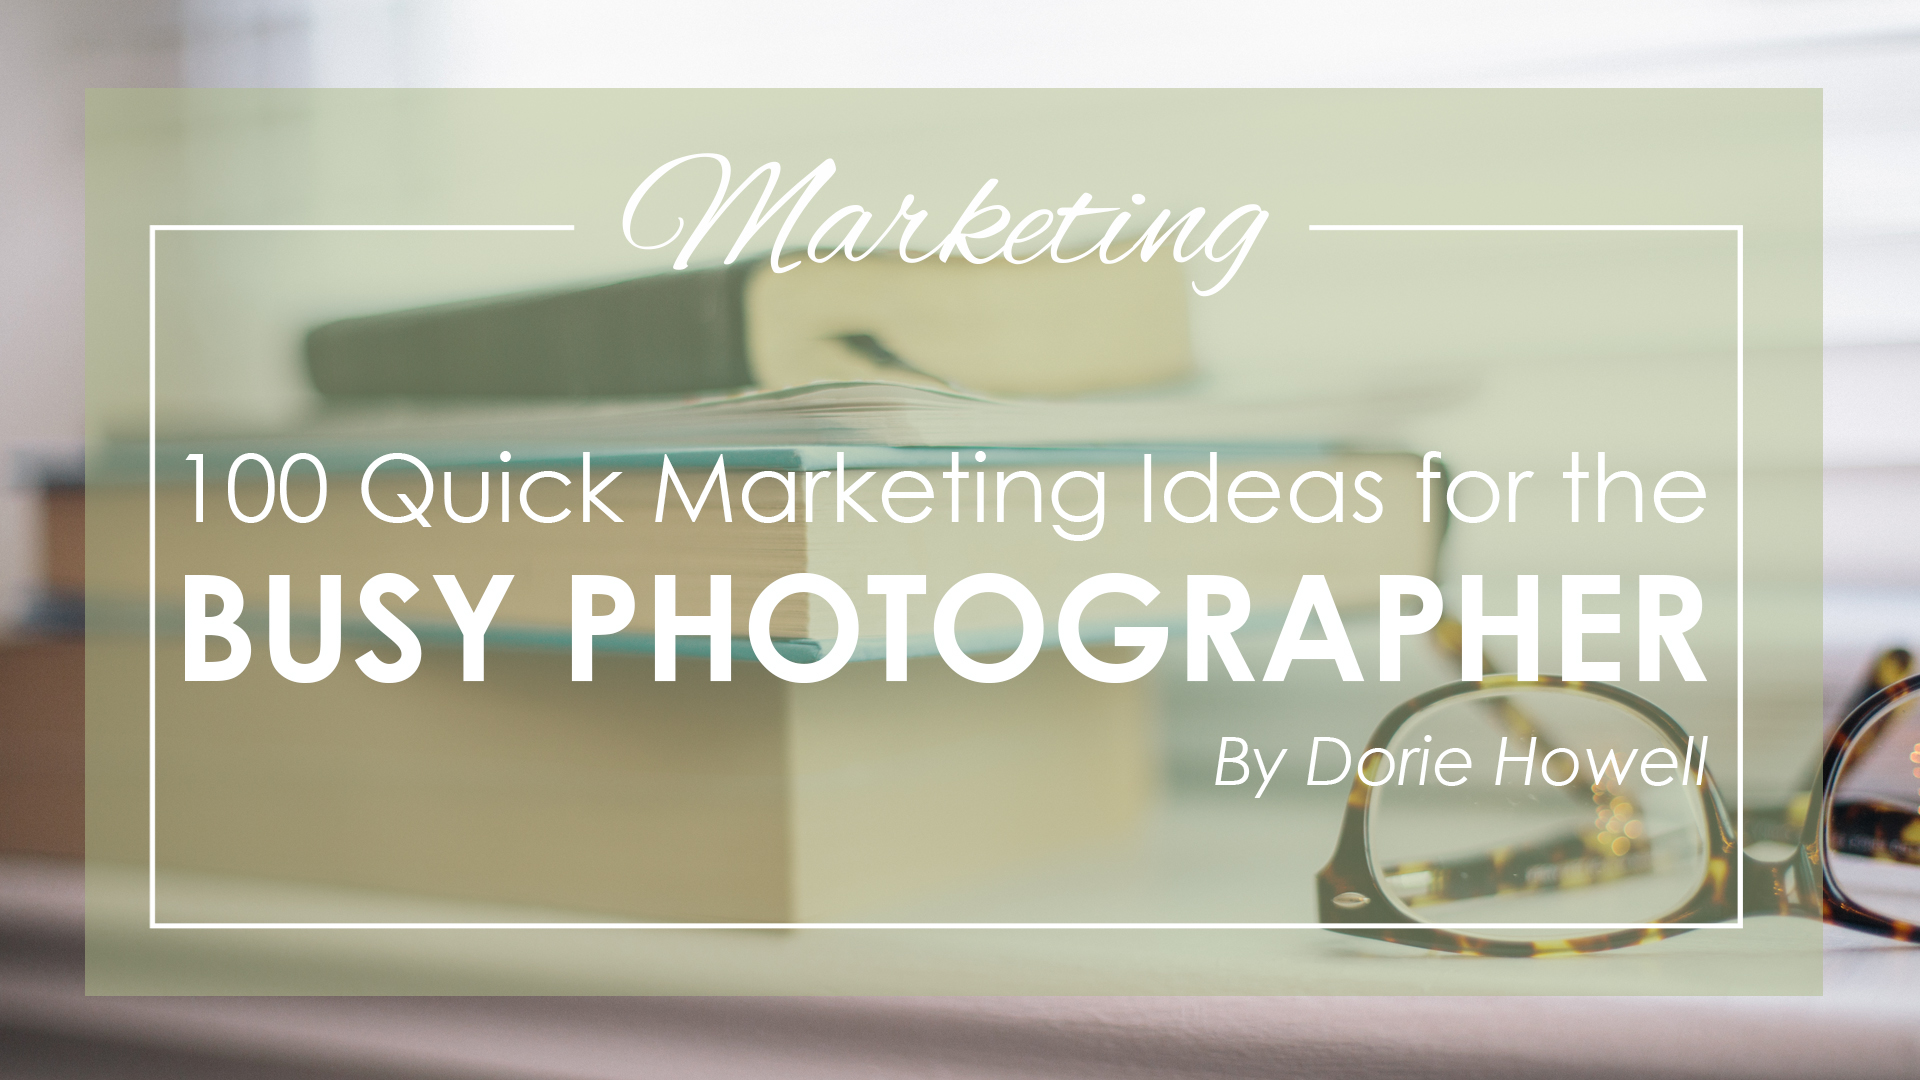 100 Quick Marketing Ideas for the Busy Photographer